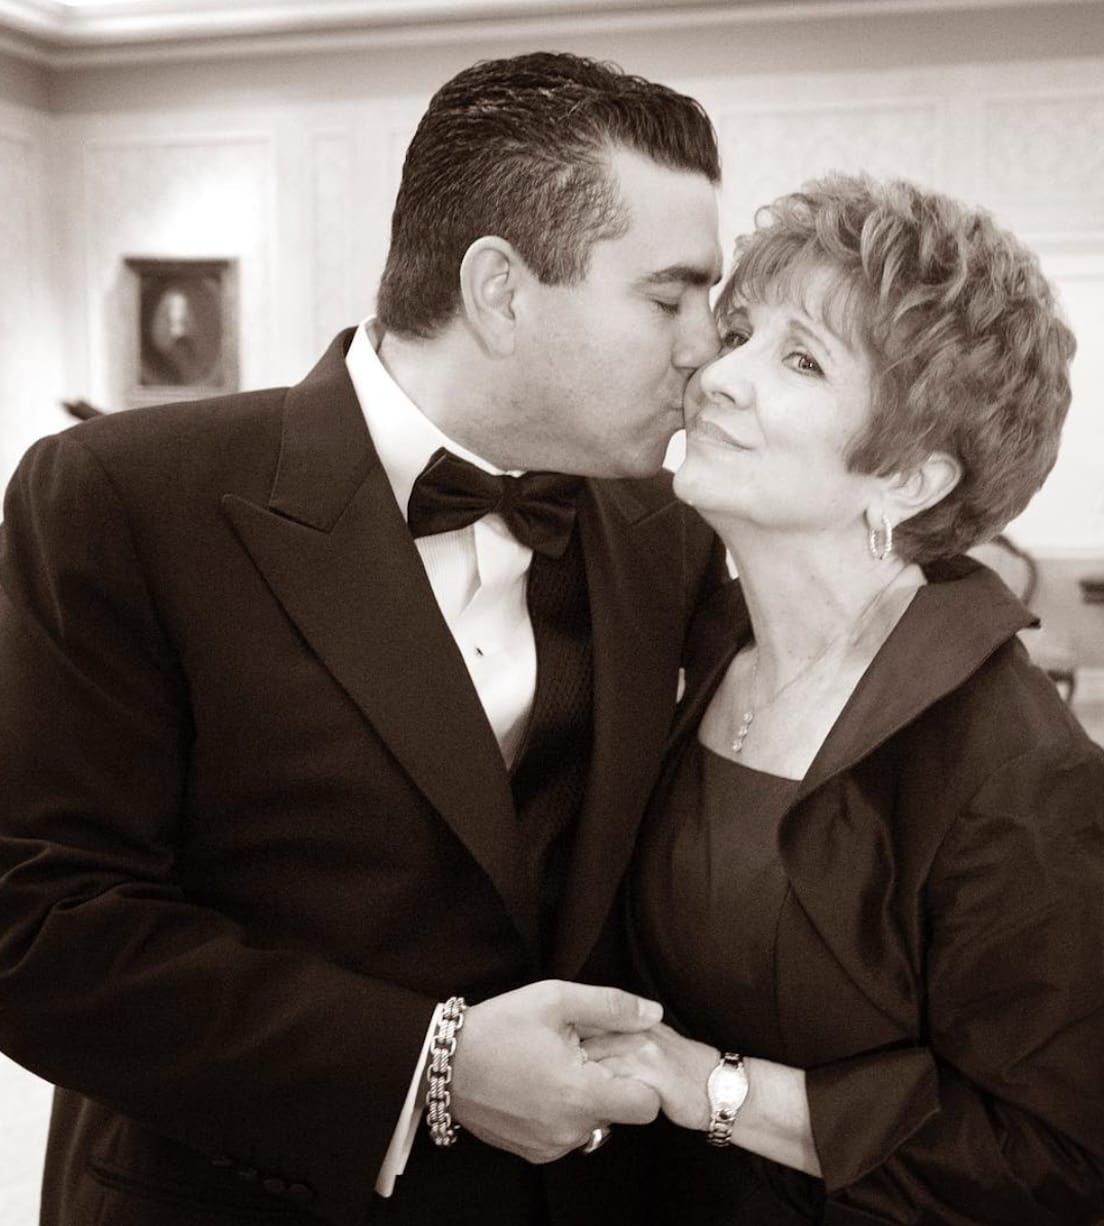 Buddy Valastro Shares Emotional Farewell to Late Mother The